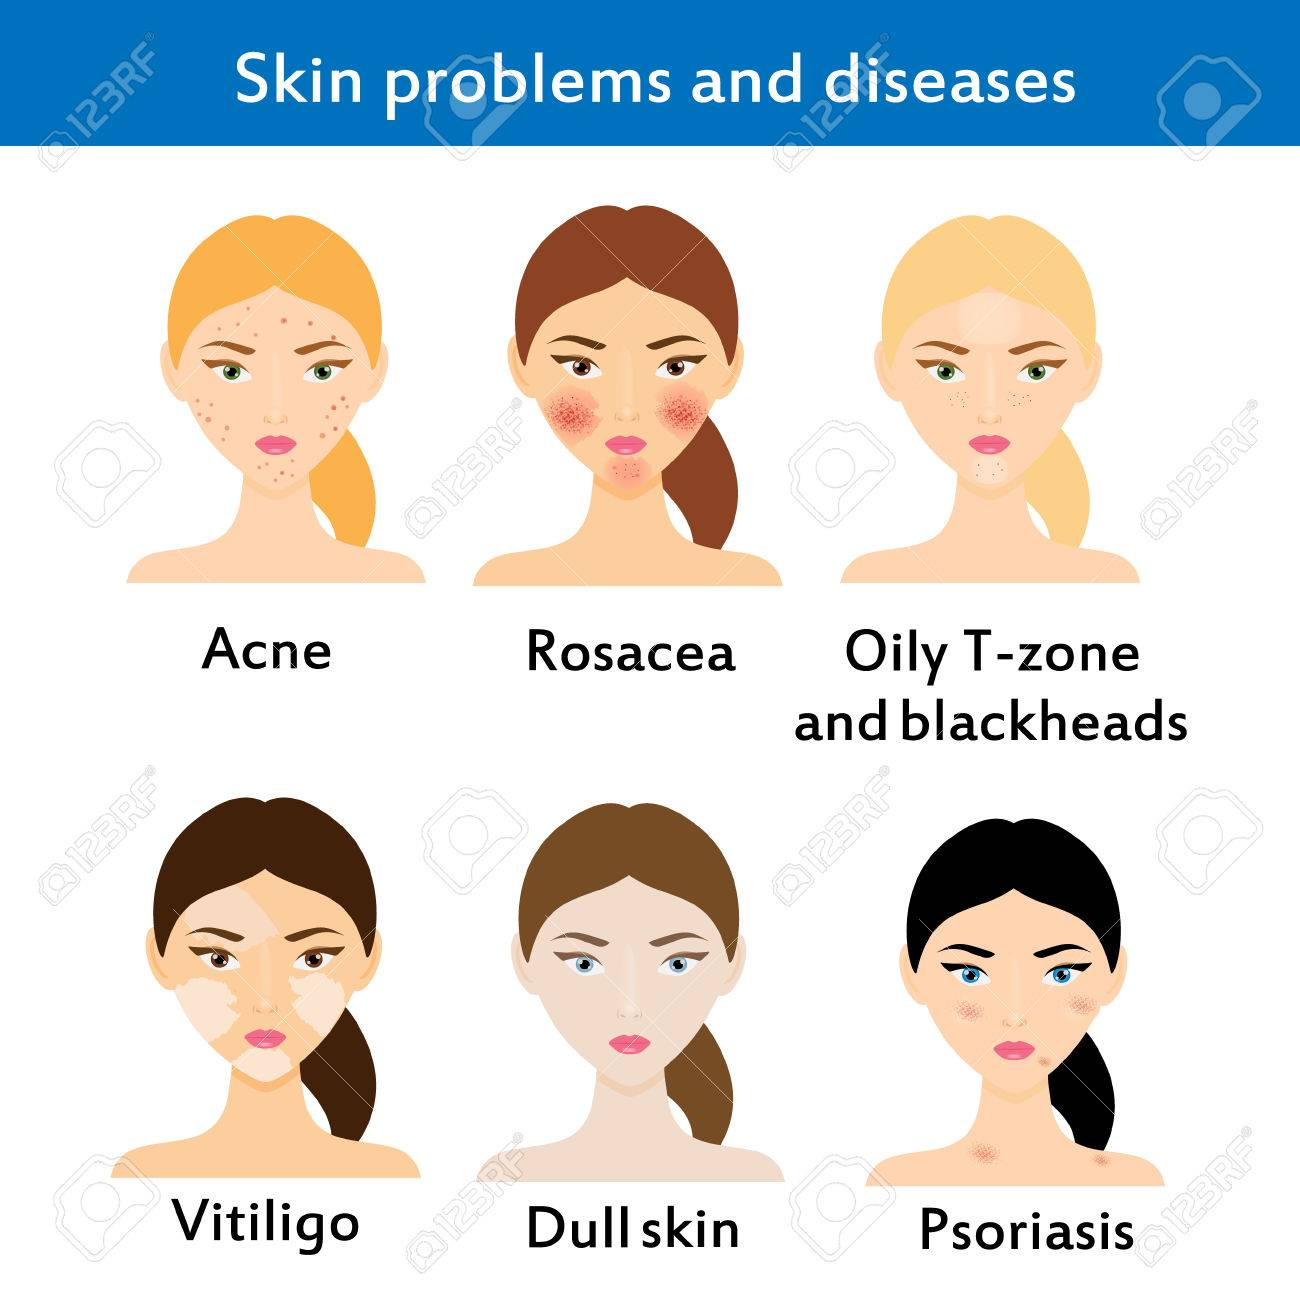 Skin problems and diseases. Acne, rosacea, vititligo and others. Vector illustration - 63020225